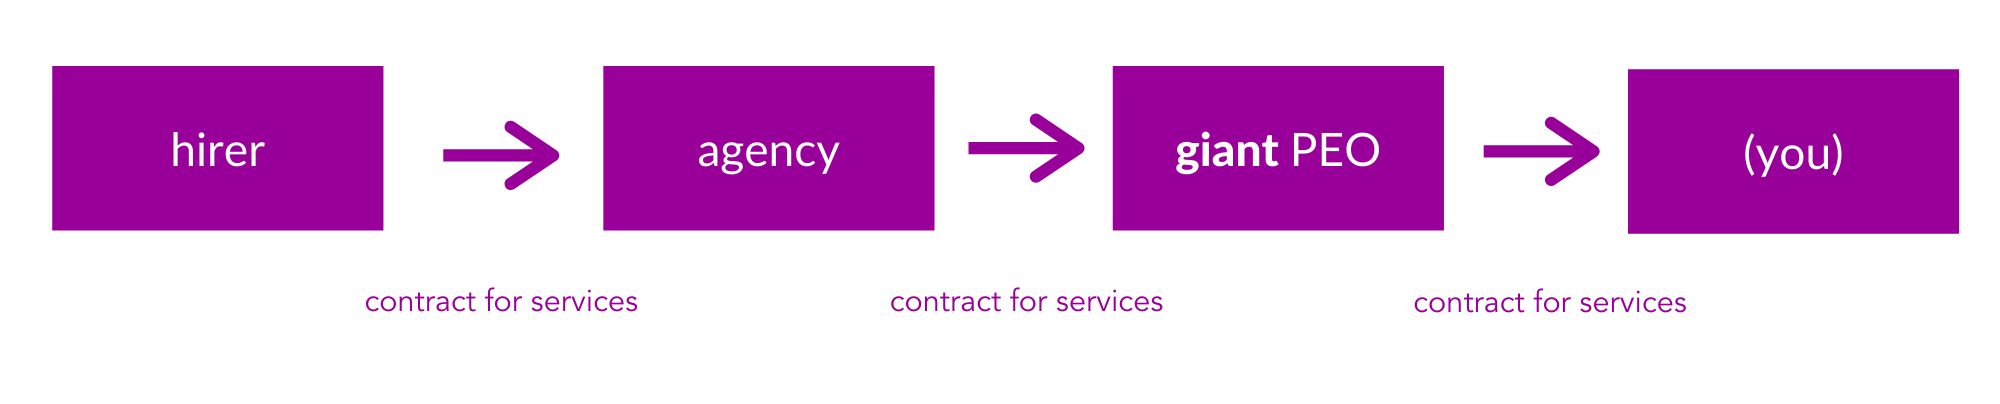 contract for services with giant PEO